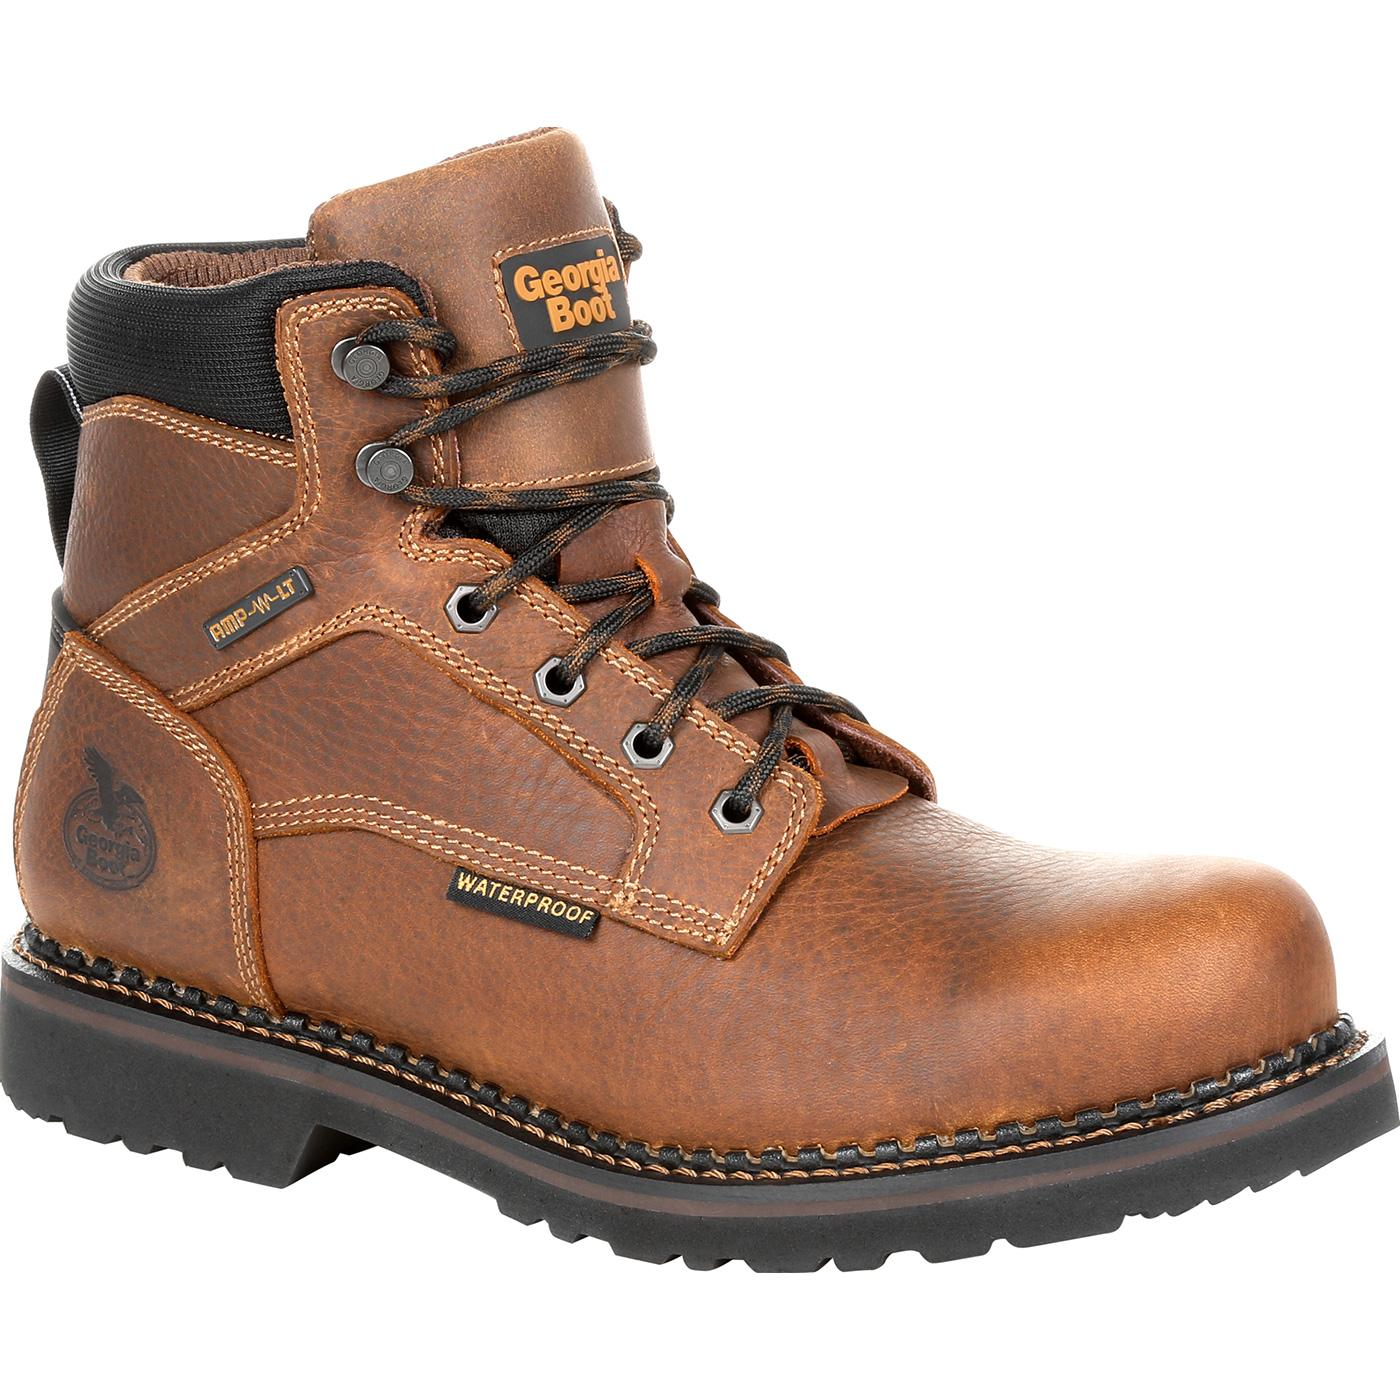 59e6e70770bbf4 Georgia Giant Revamp Steel Toe Waterproof Work Boot, , large